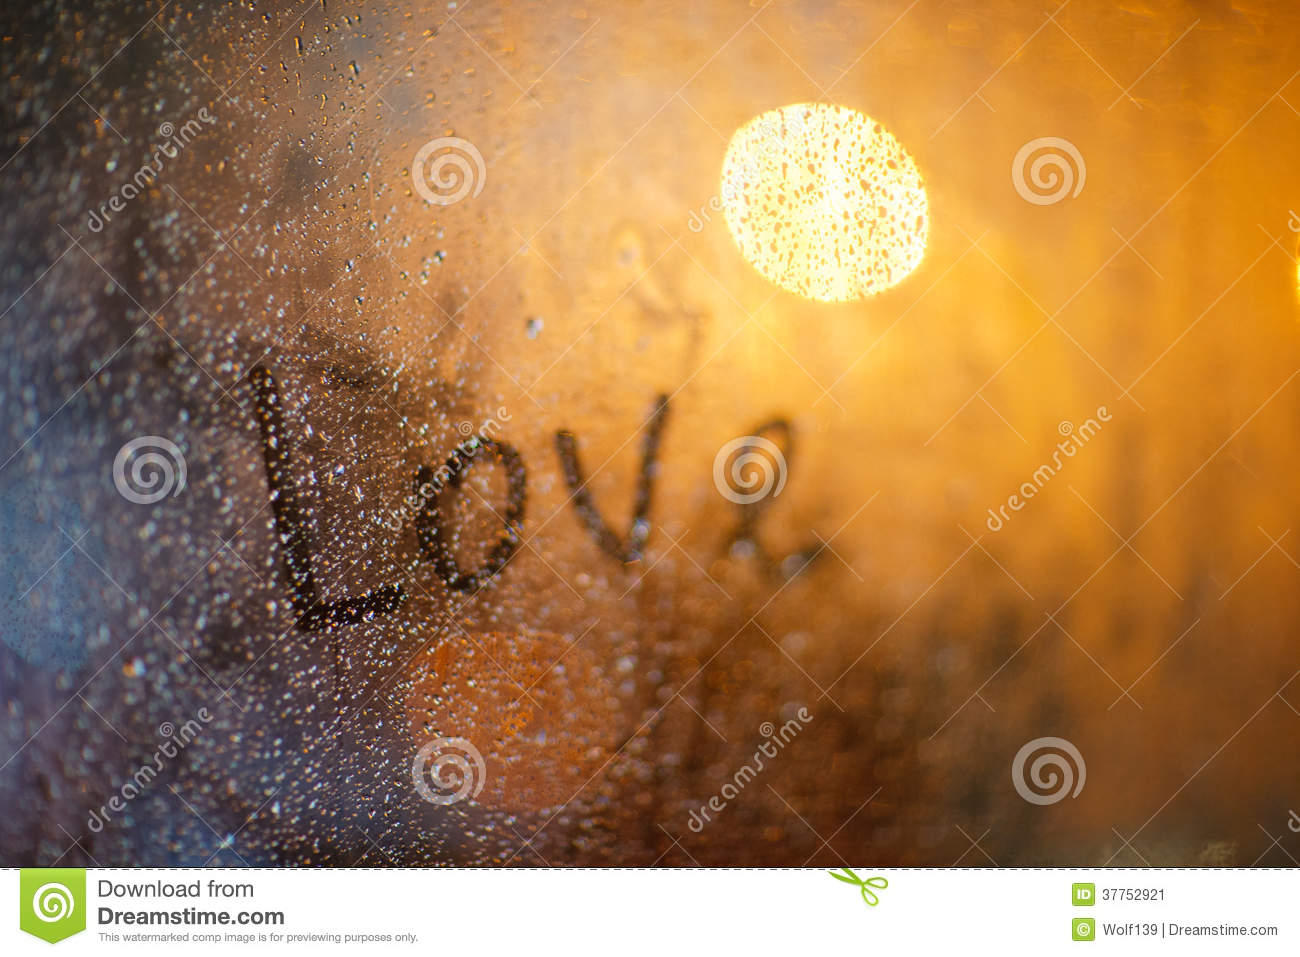 Download The Word Love On The Window In Rain Stock Image Image Of Droplets